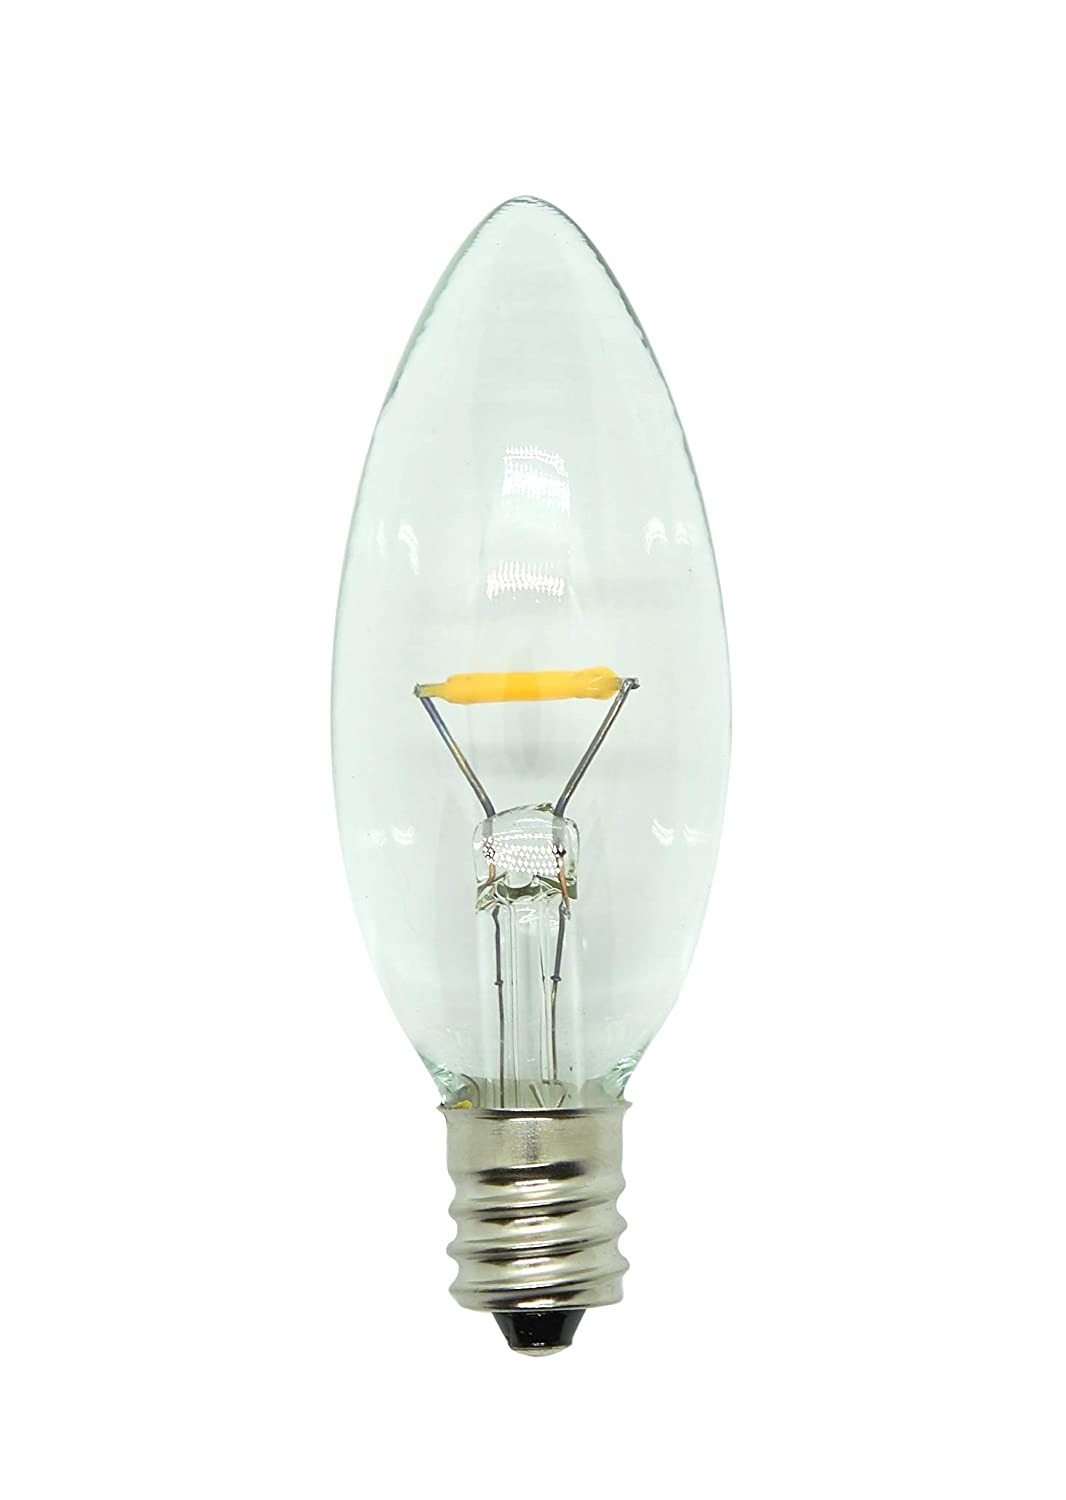 Celestial Lights Six LED Window Candle Replacement Bulbs for Plug-in Window Candles or Switch Models Timer Works with All Sensor